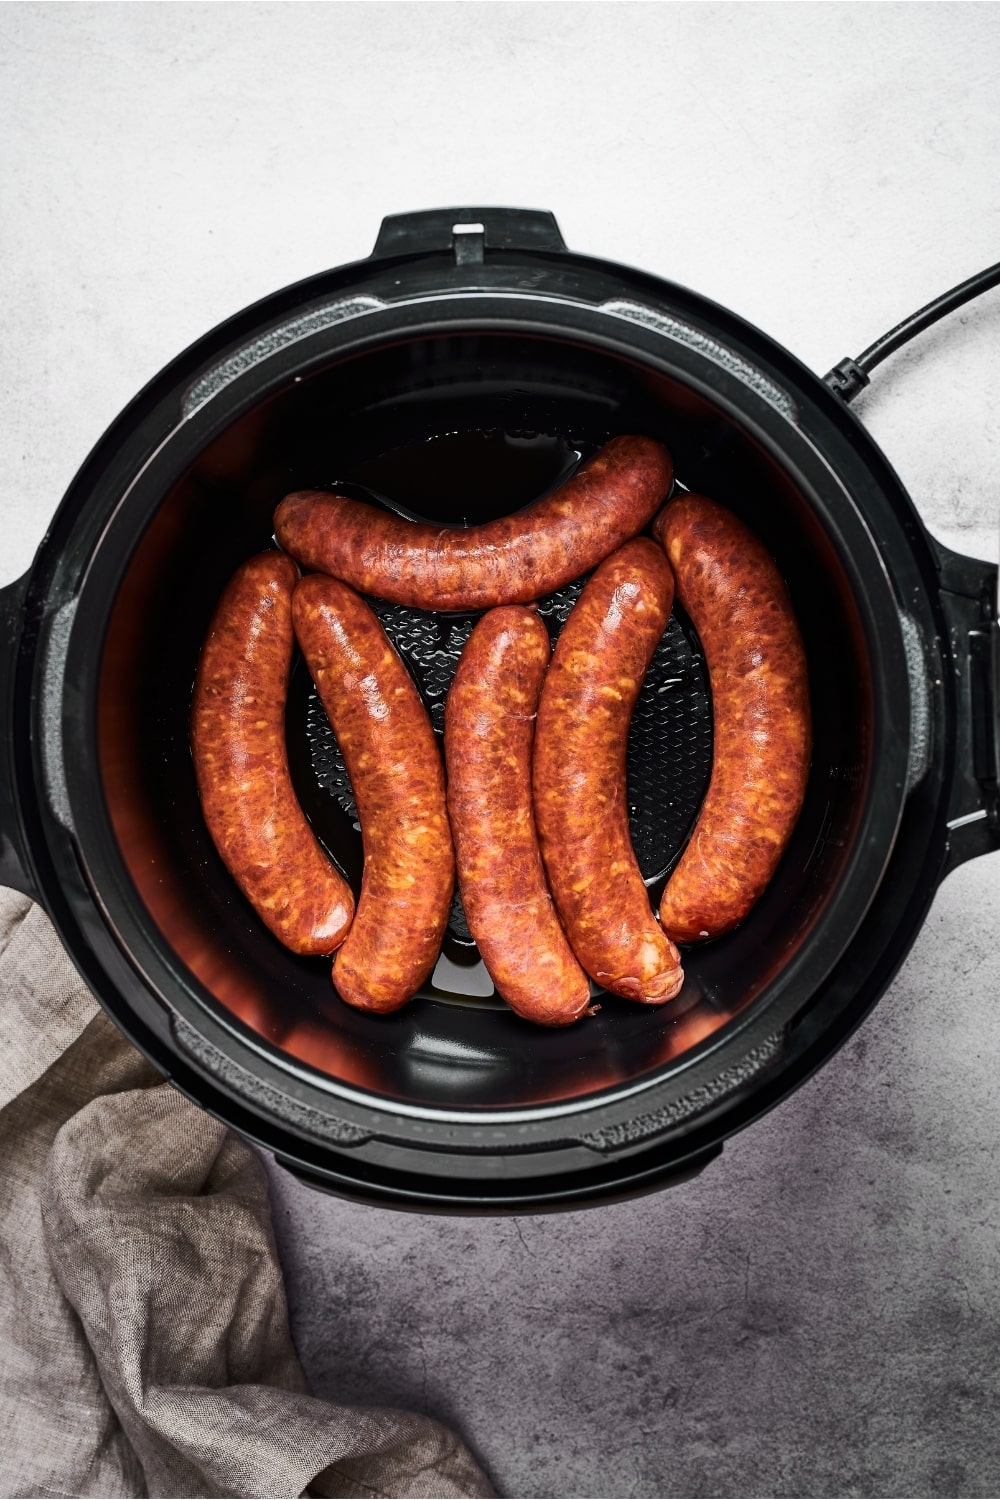 Six Italian sausages in an instant pot.